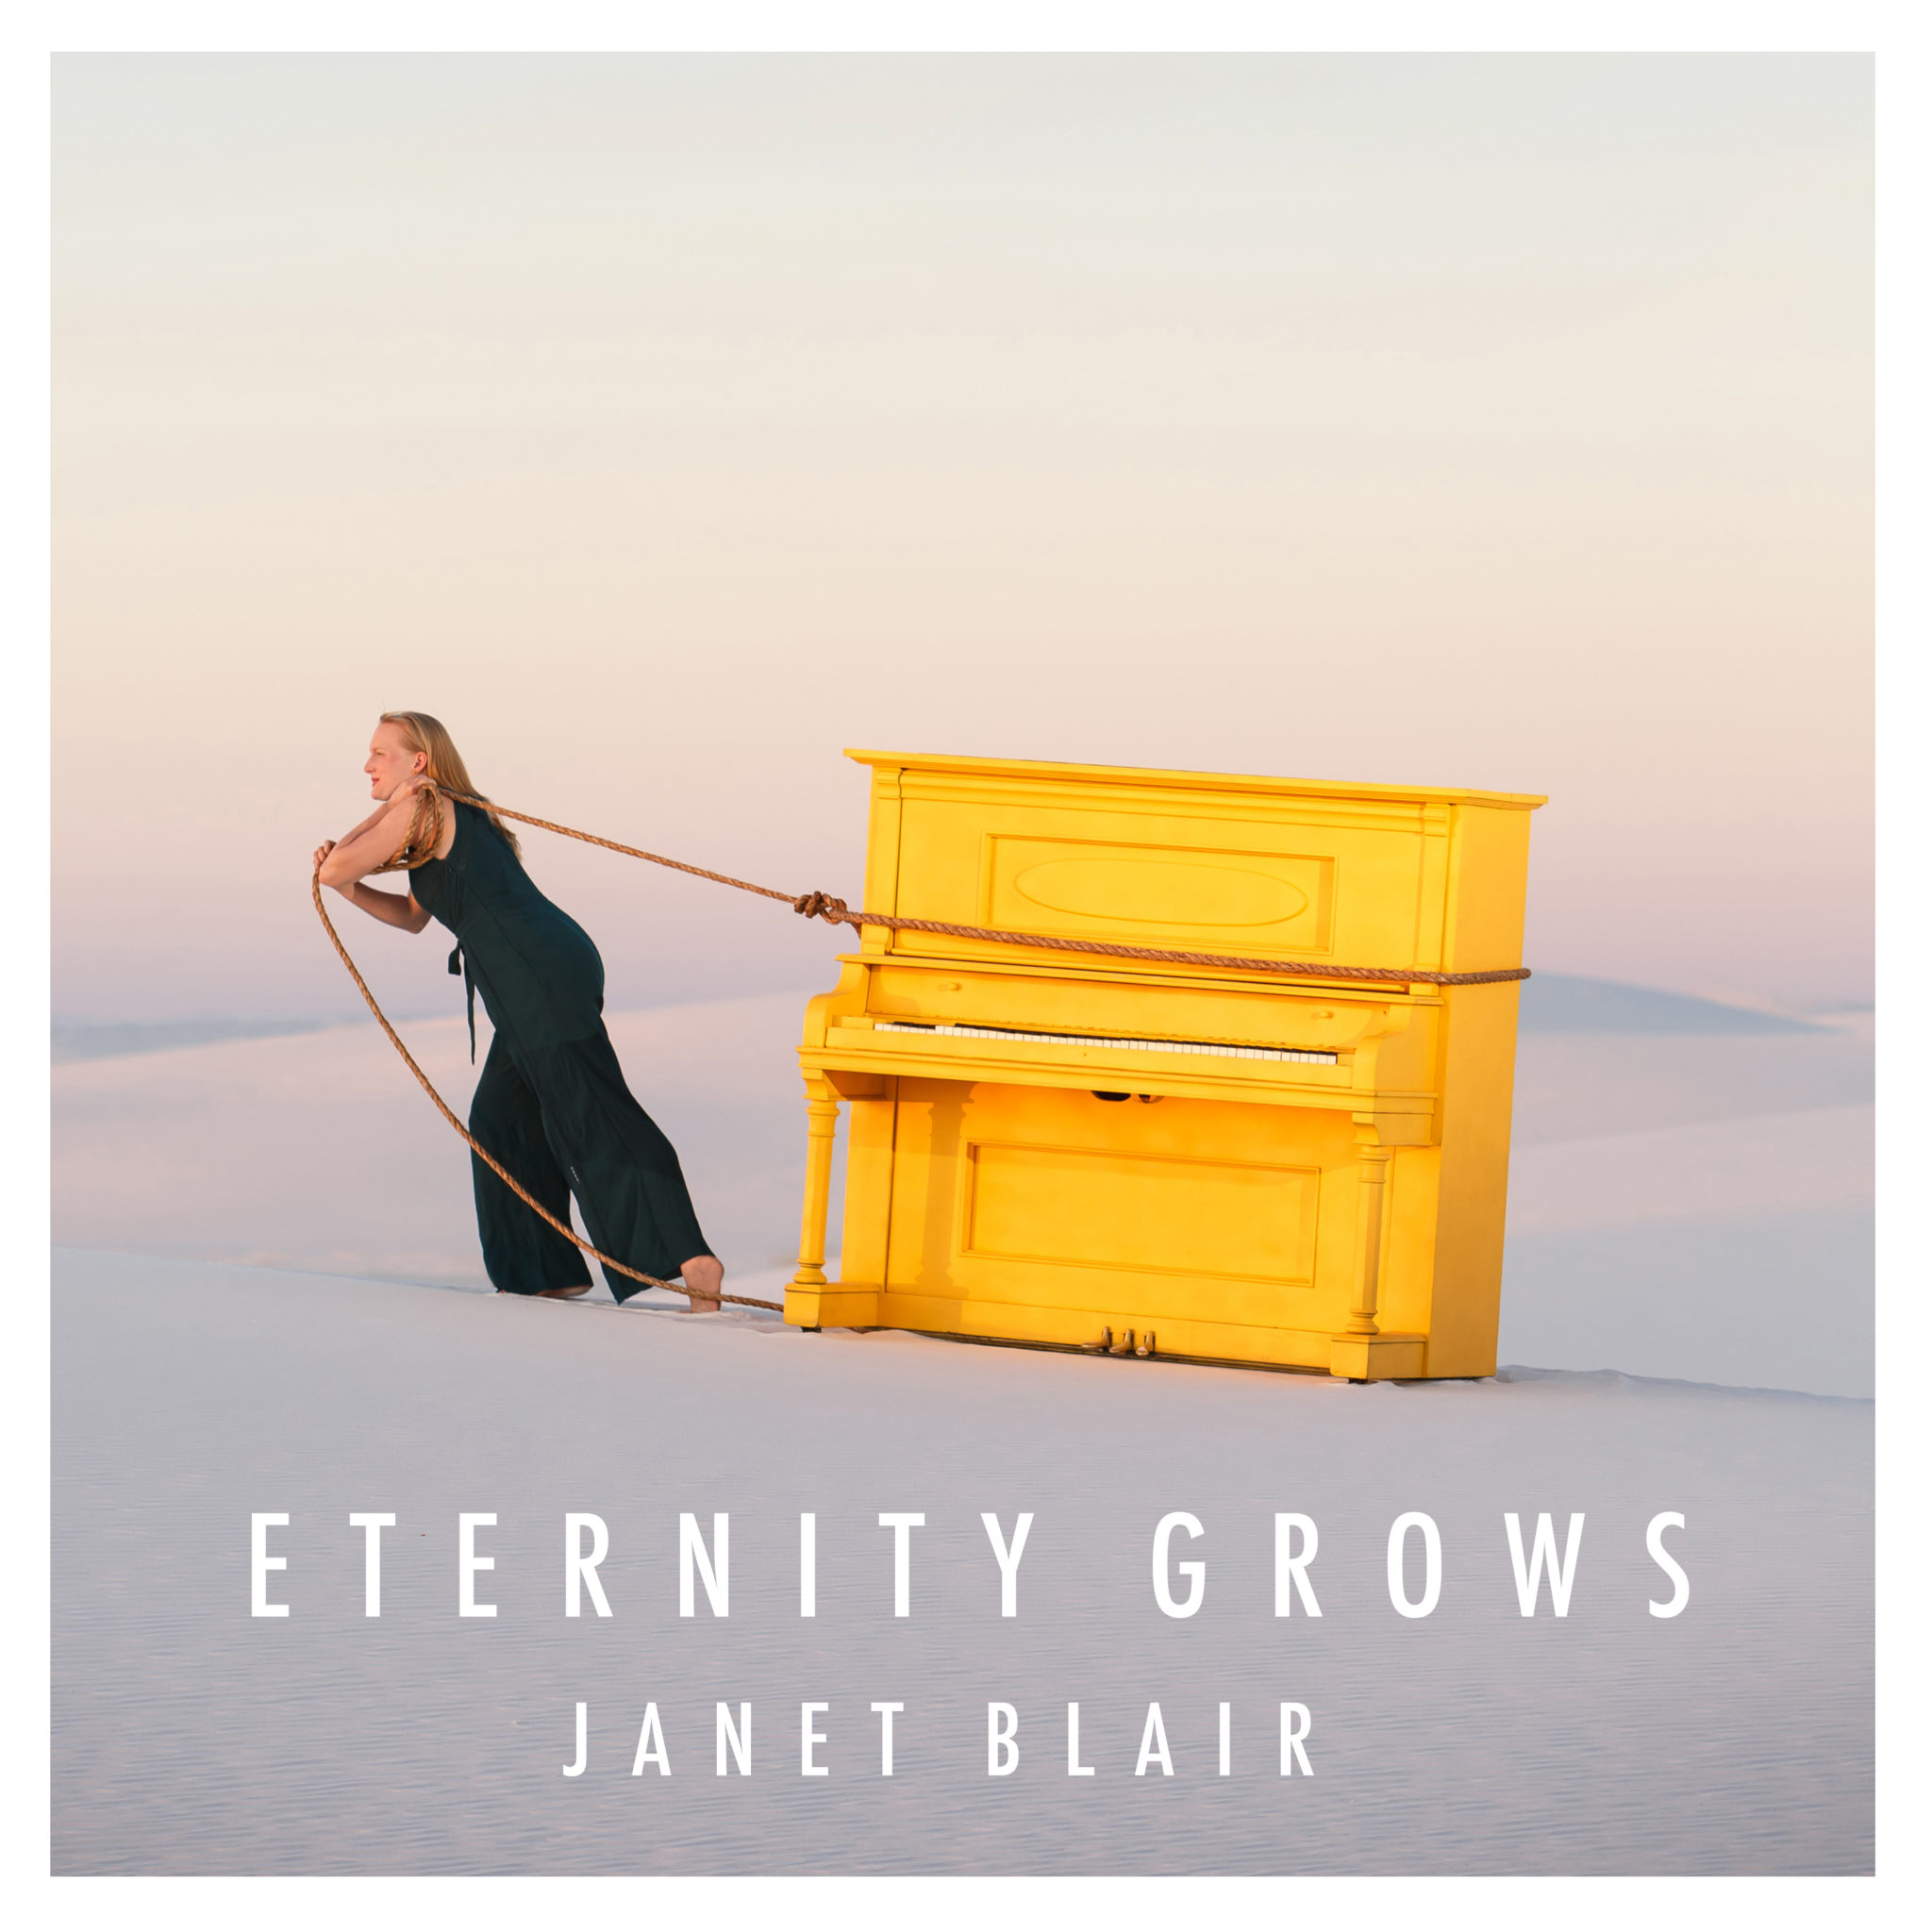 SINGER/SONGWRITER JANET BLAIR RELEASES FIRST SINGLE